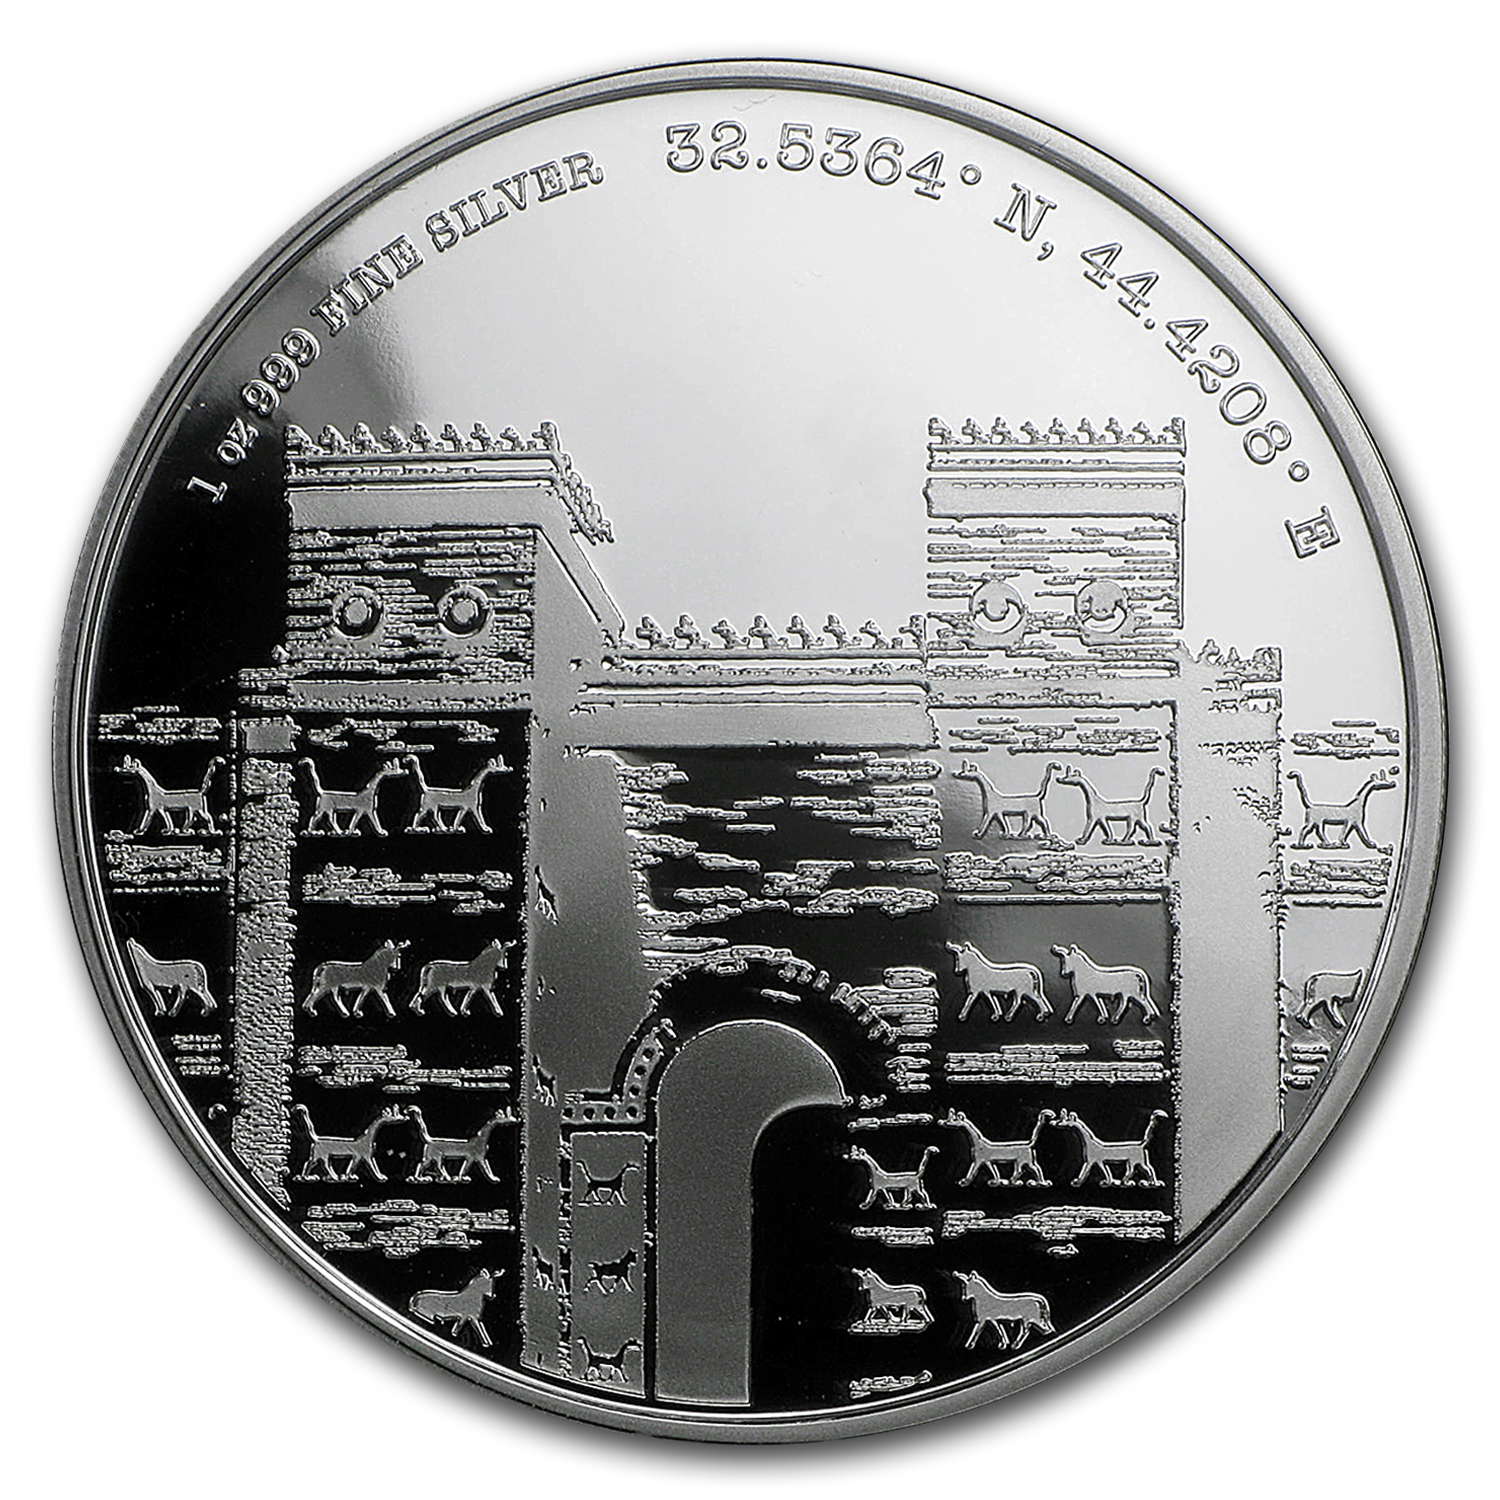 2016 Niue Proof 1 oz Silver Forgotten Cities Babylon